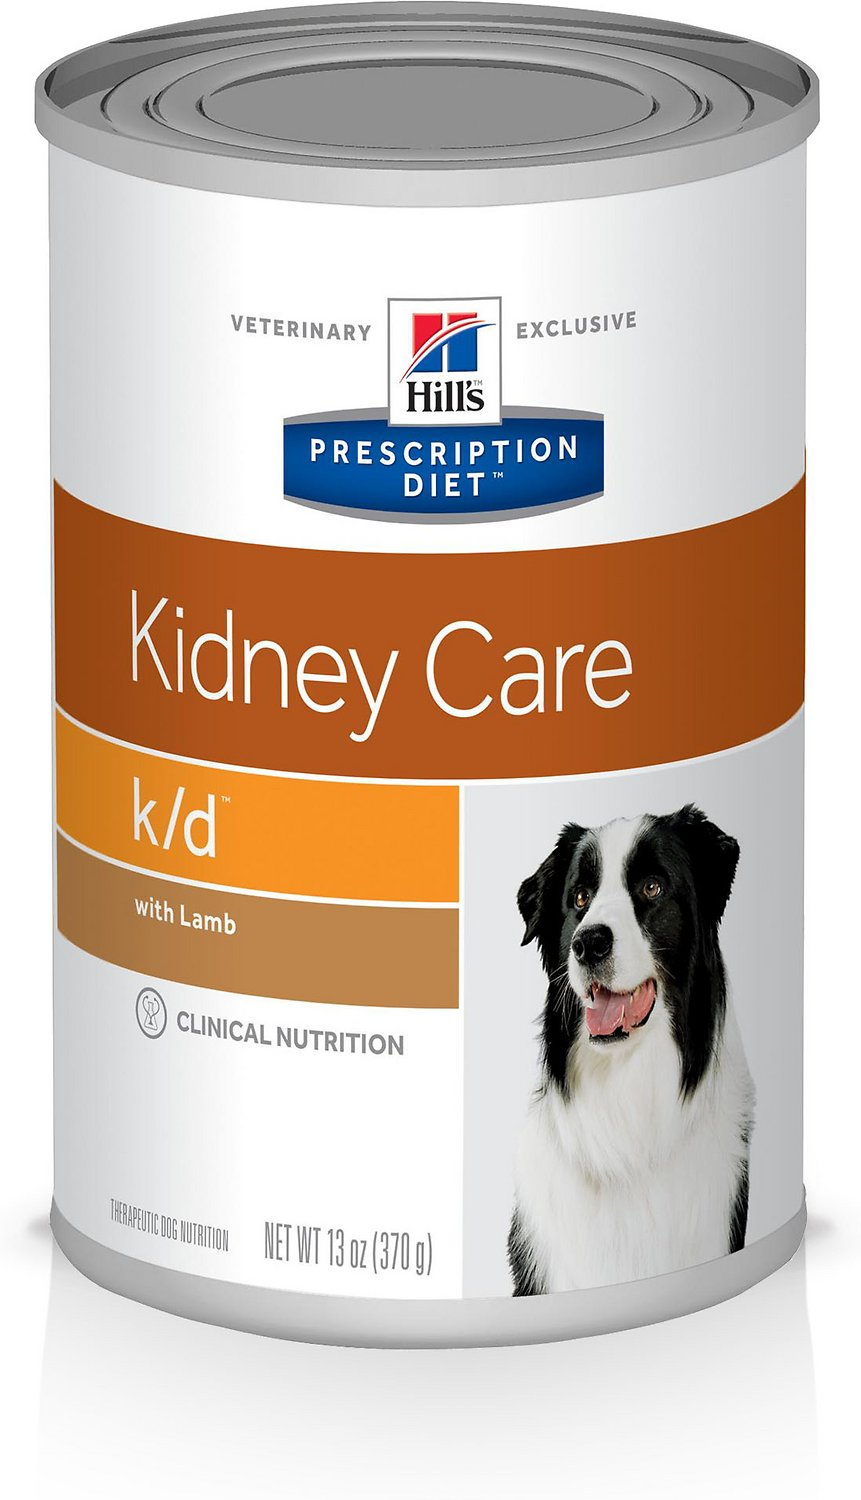 Kd Diet Canned Dog